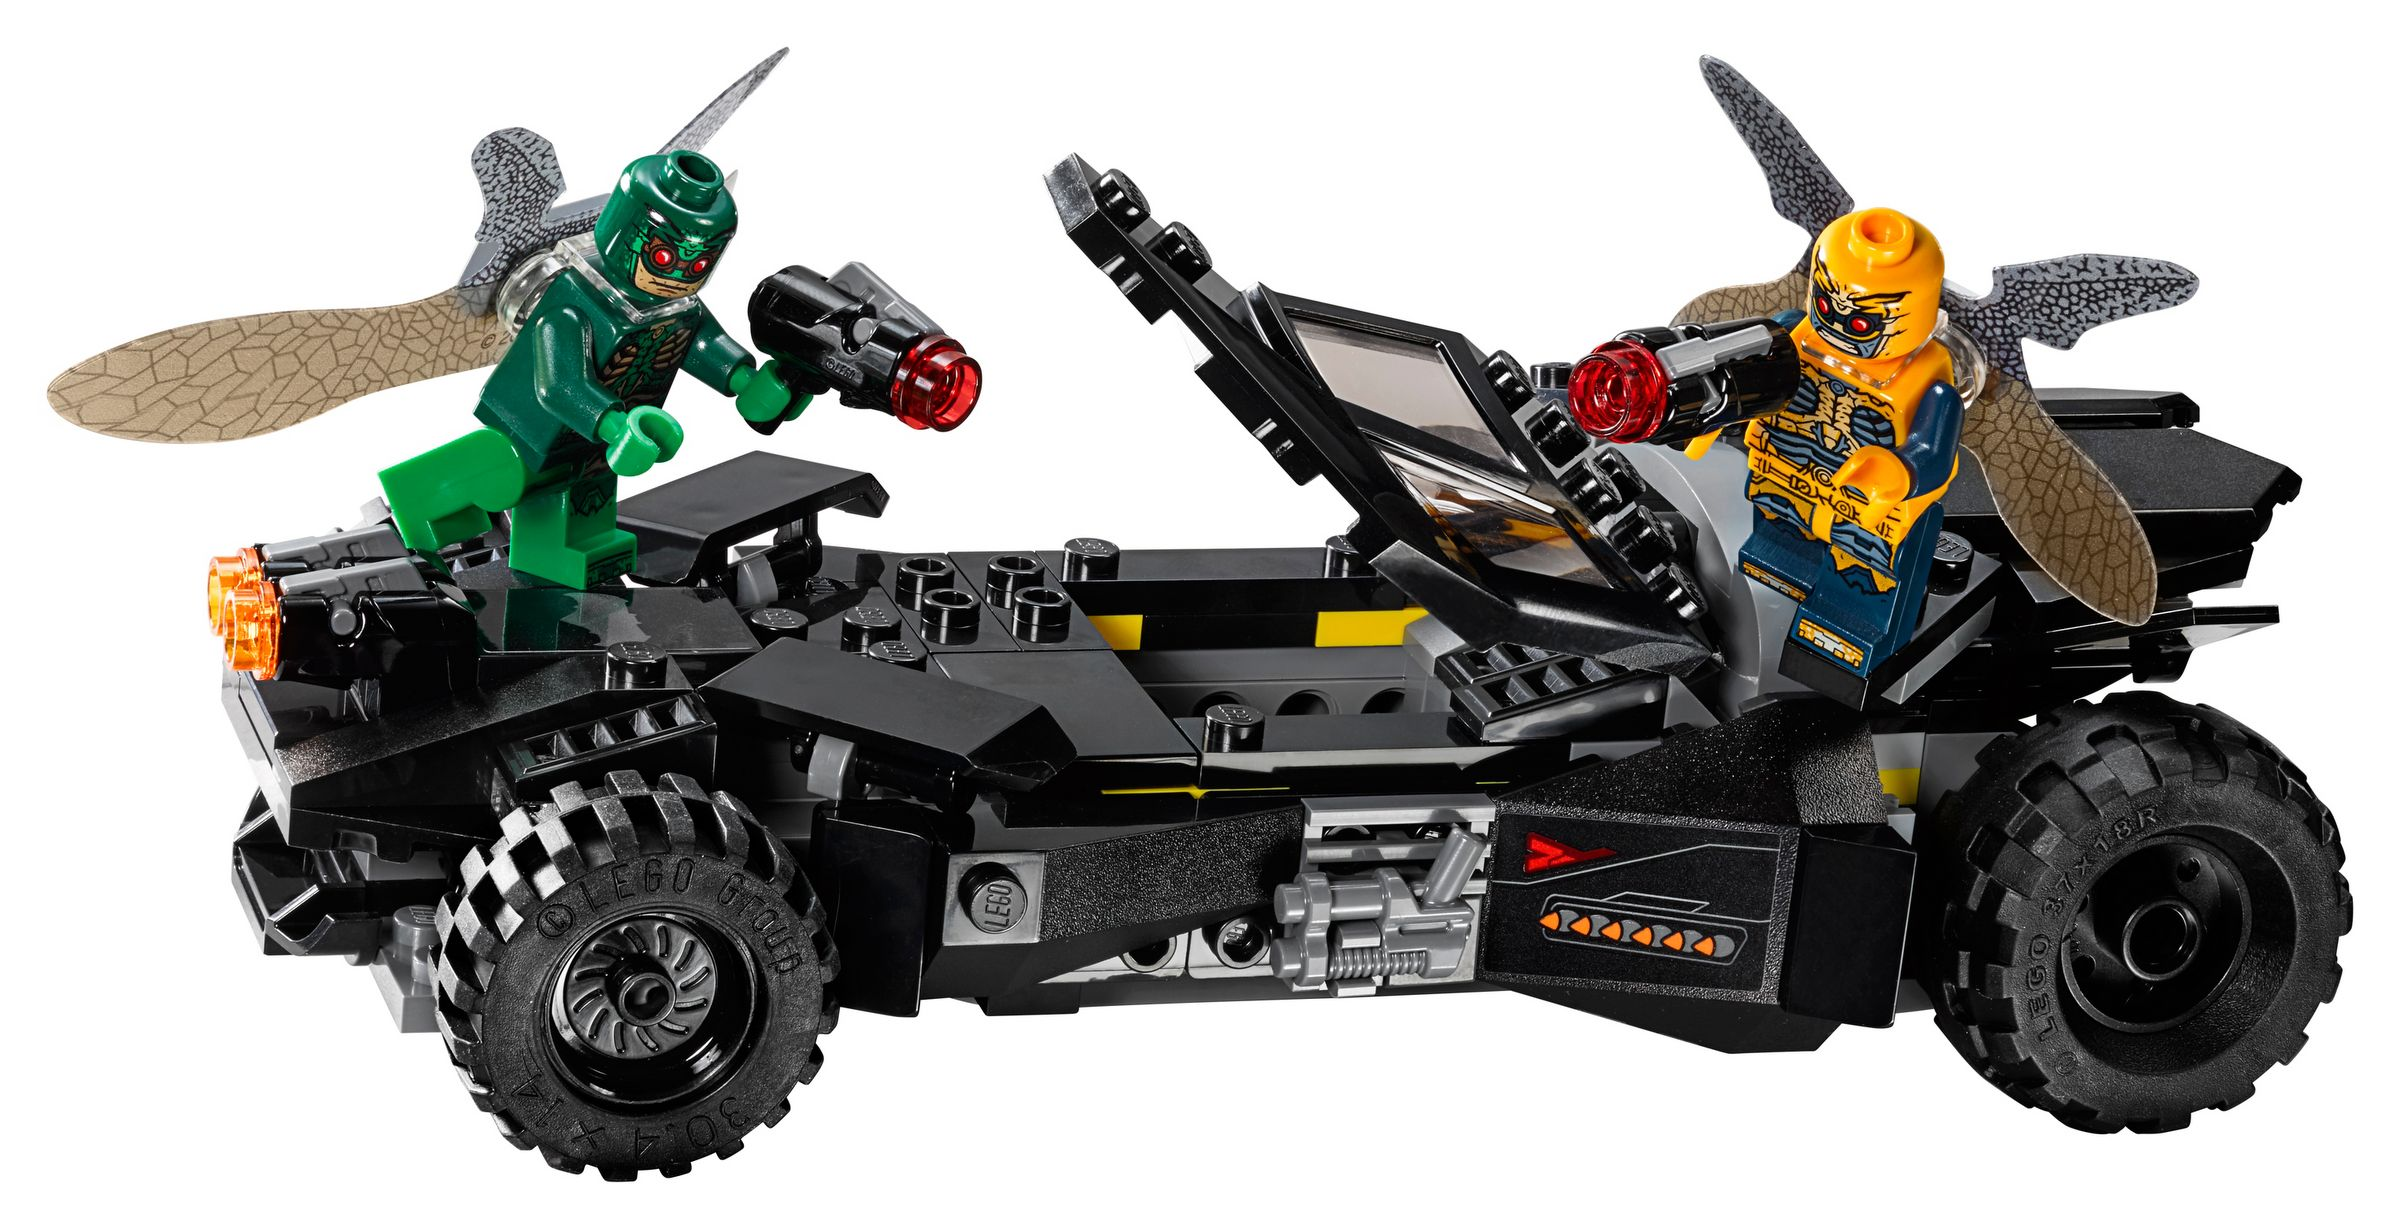 LEGO Super Heroes 76087 Flying Fox: Batmobil-Attacke aus der Luft LEGO_76087_alt13.jpg